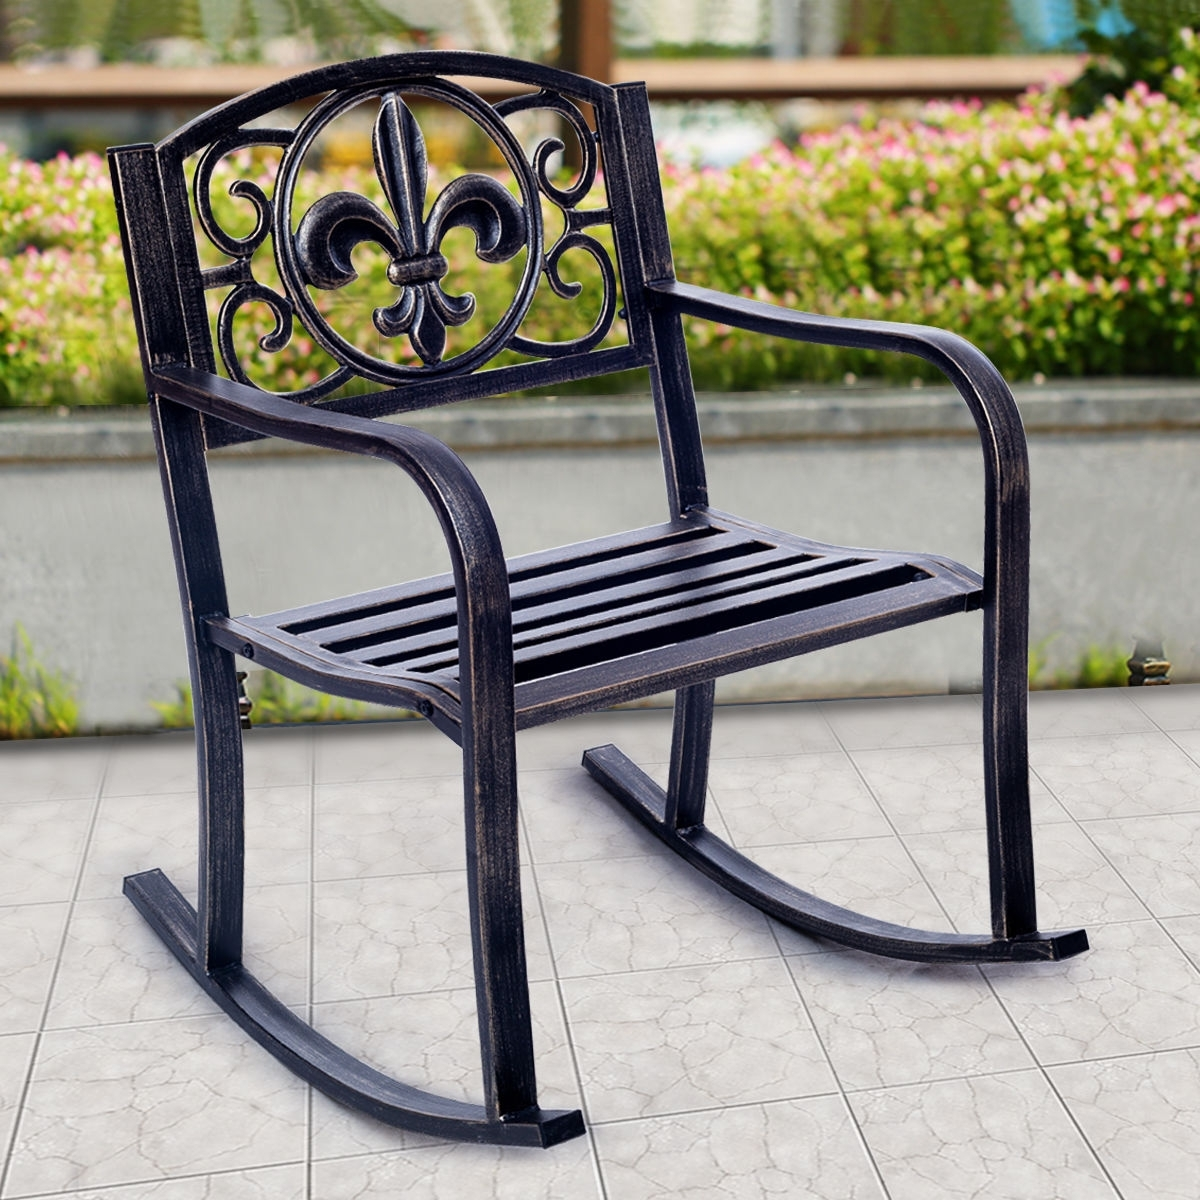 Costway: Costway Patio Metal Rocking Chair Porch Seat Deck Outdoor Regarding Outdoor Patio Metal Rocking Chairs (#4 of 15)